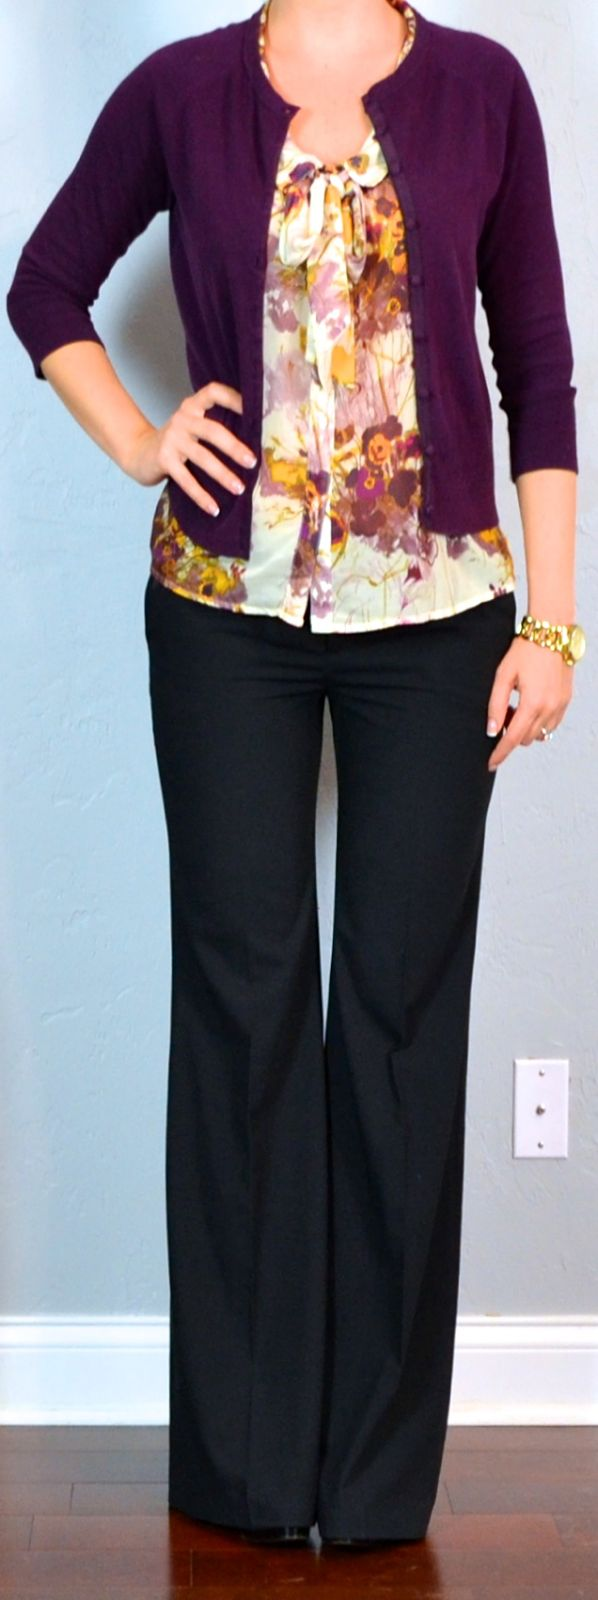 Outfit Posts: outfit posts: burgundy cardigan, floral tie-neck blouse, black dress pants